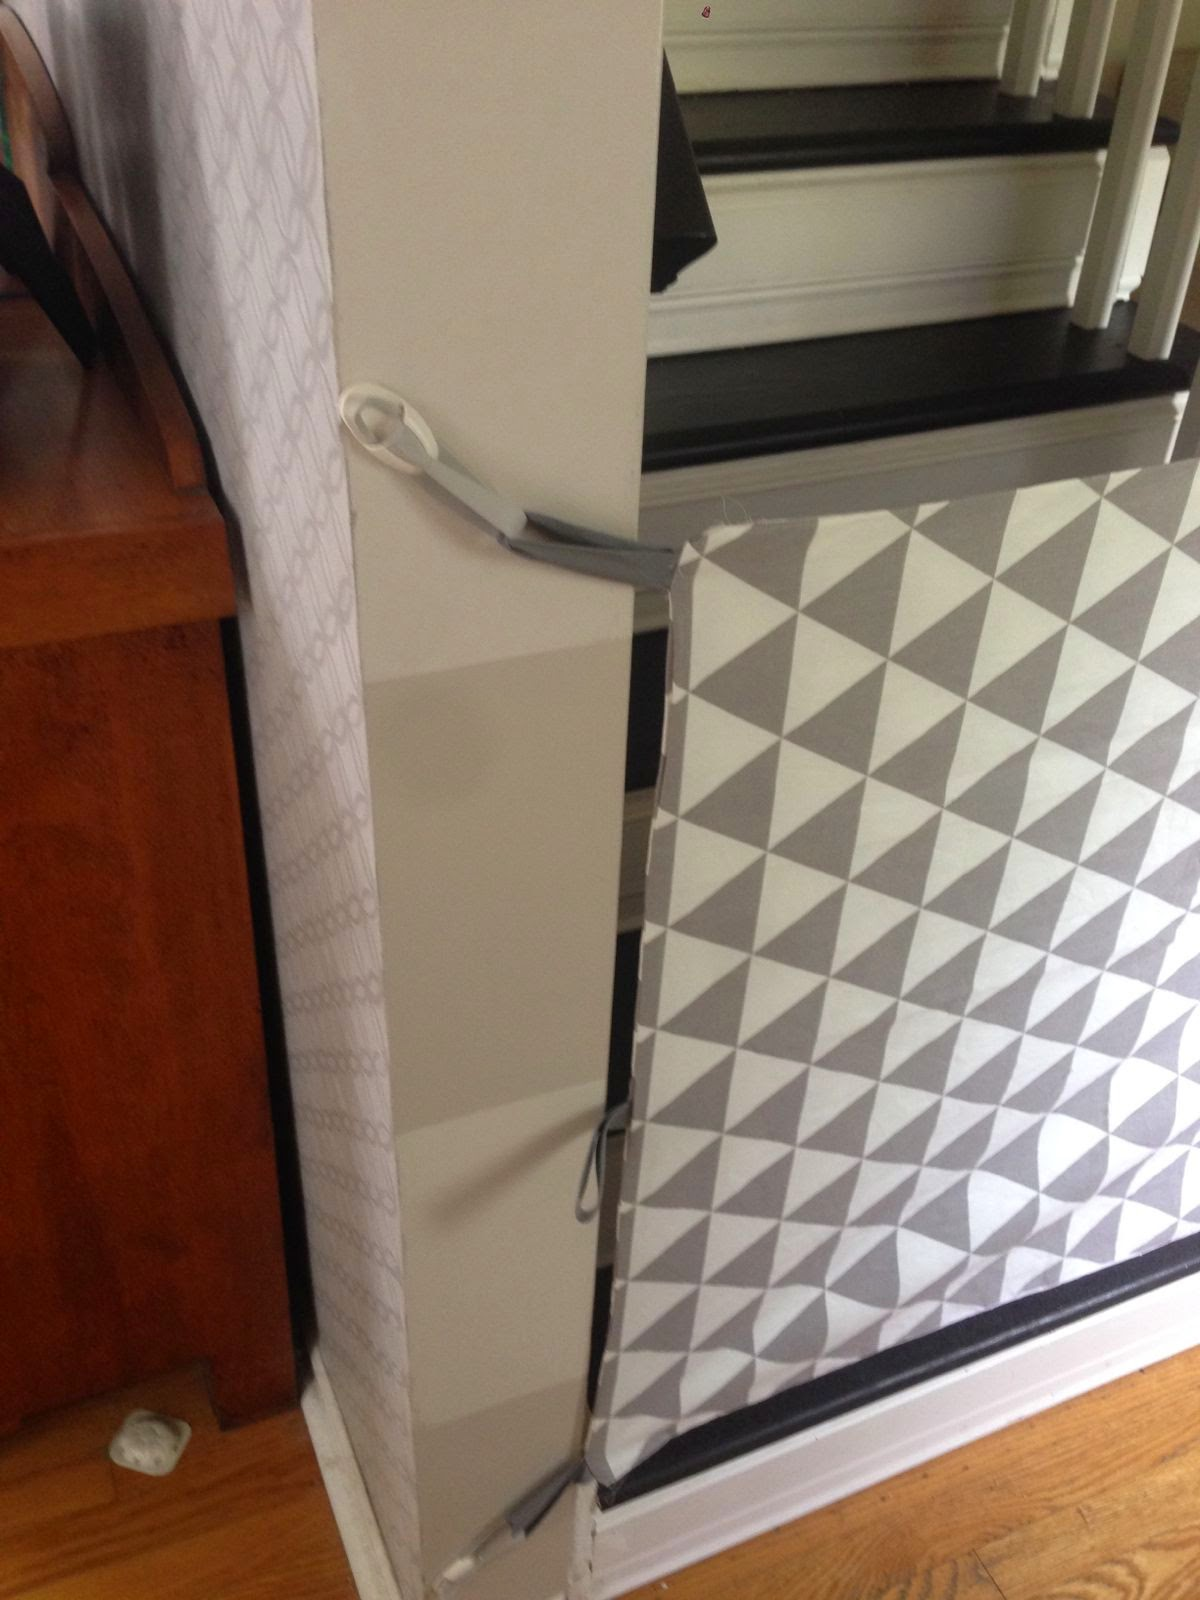 Diy Fabric Baby Gate For Stairs Clublifeglobal Com